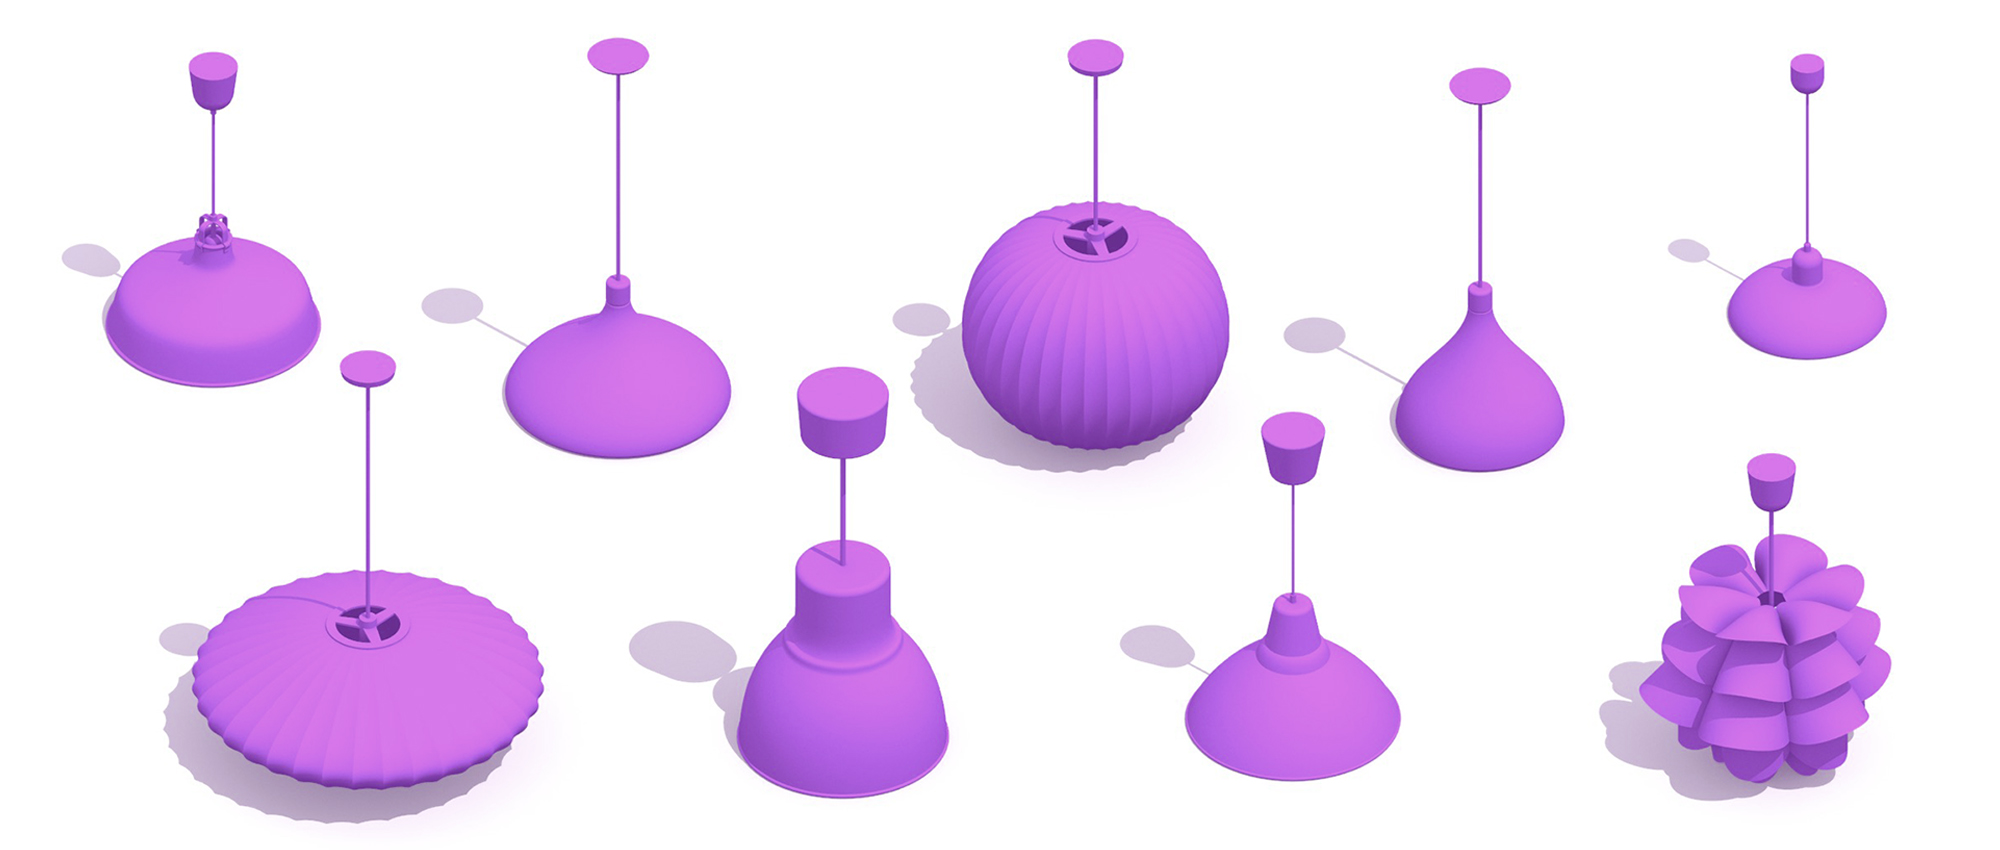 Collection of various Pendant Lights in 3D showing a range of designs, sizes, styles, and functions